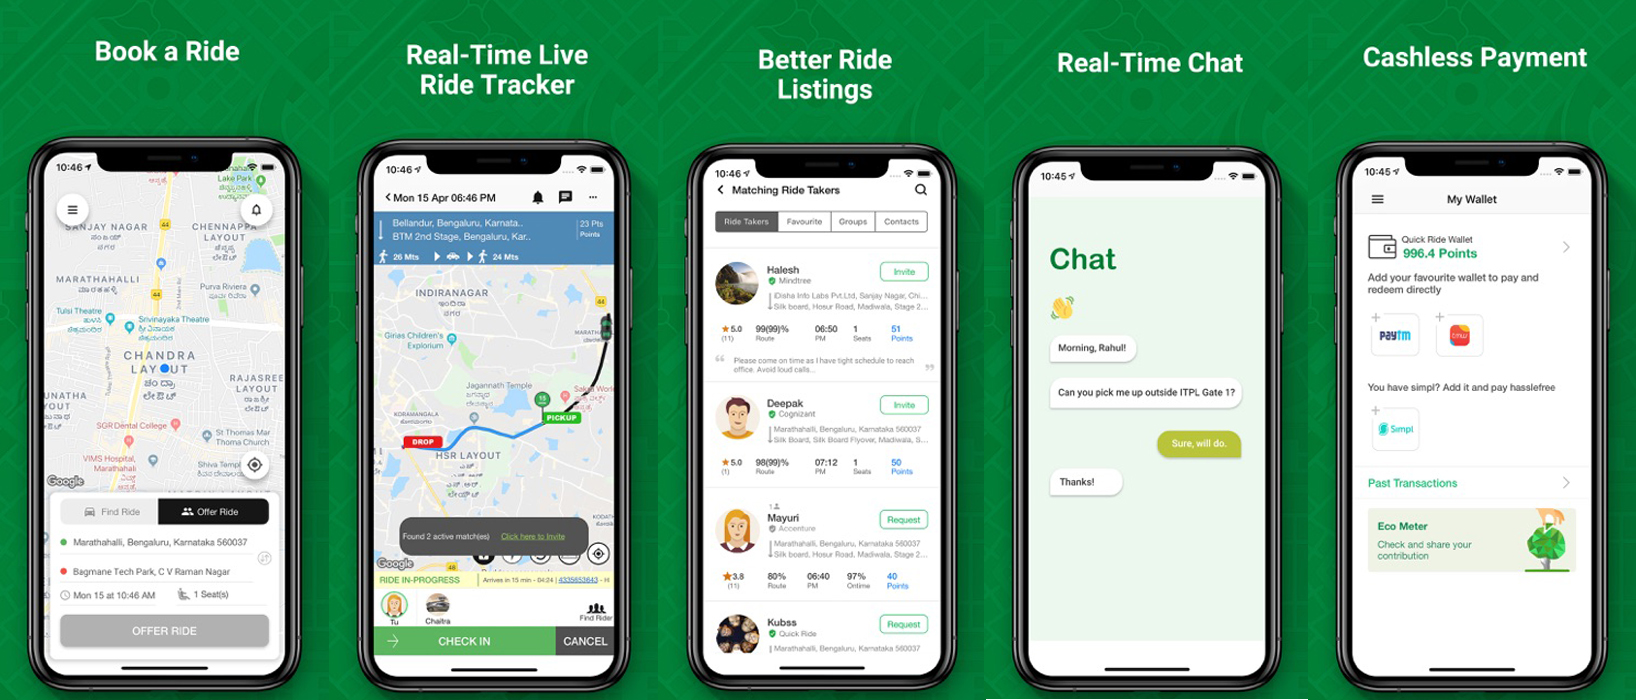 How Does Quick Ride, sRide like Carpooling App Work